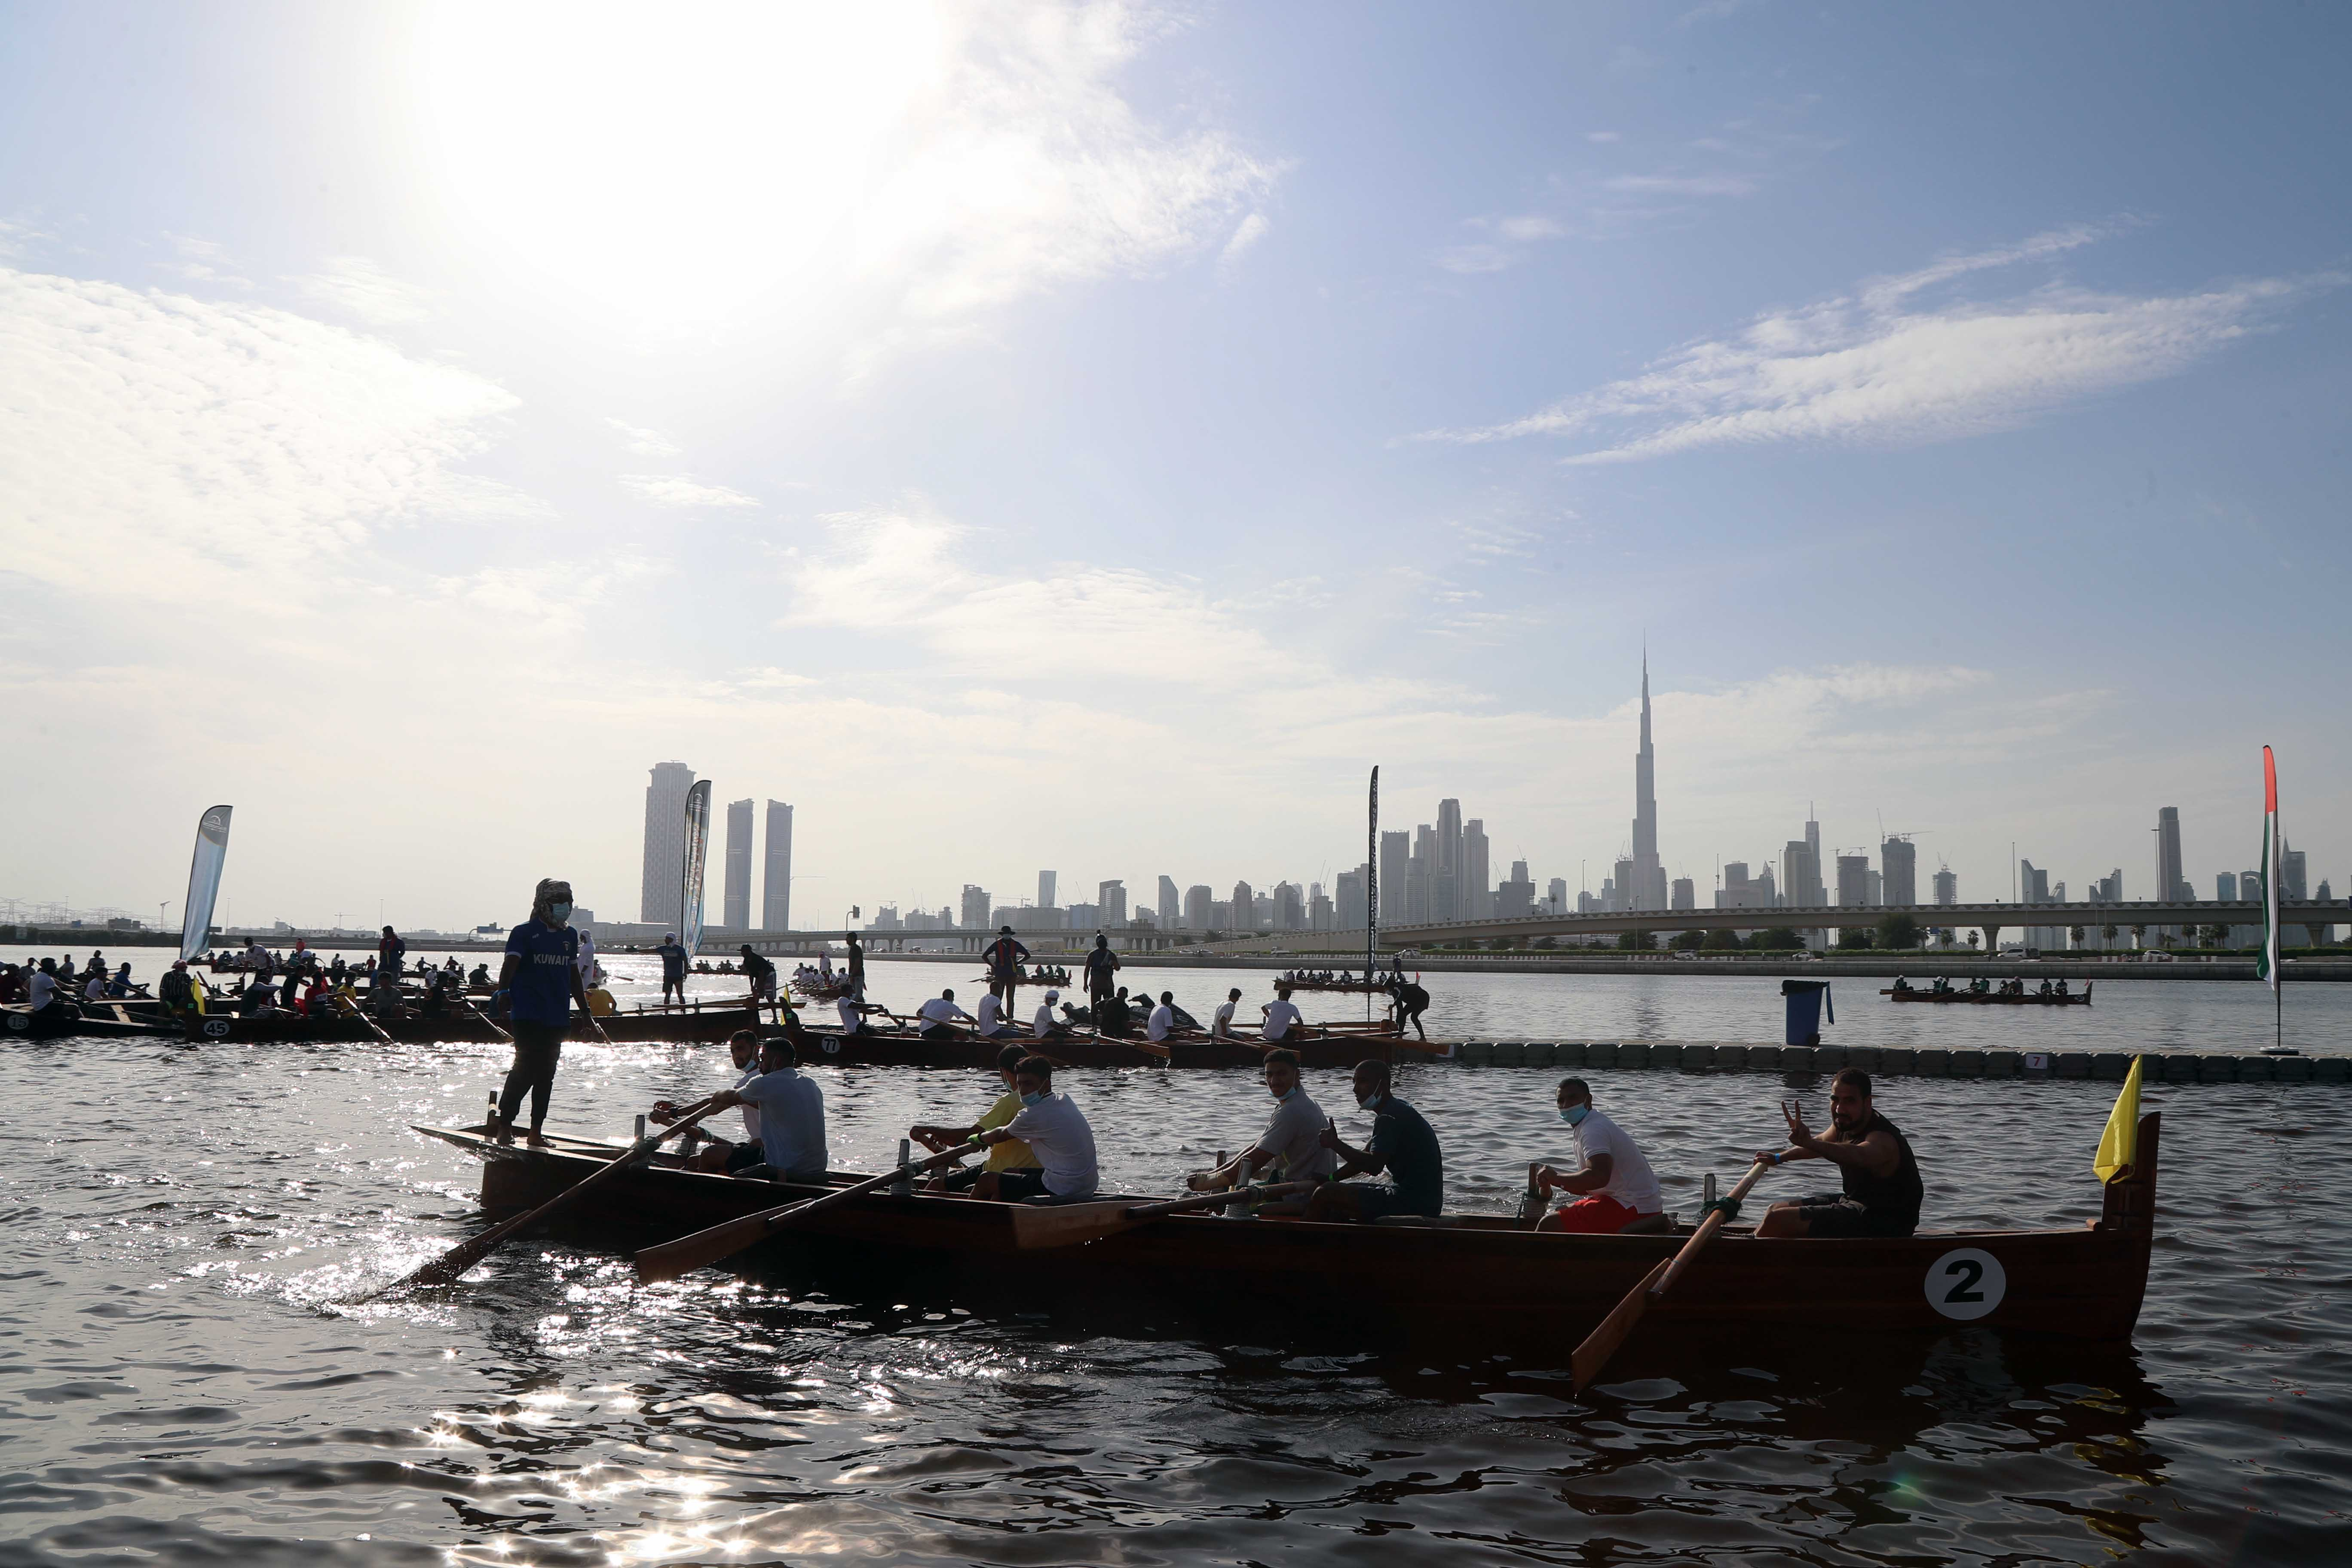 40 Boats Compete in the Second Traditional Rowing Race